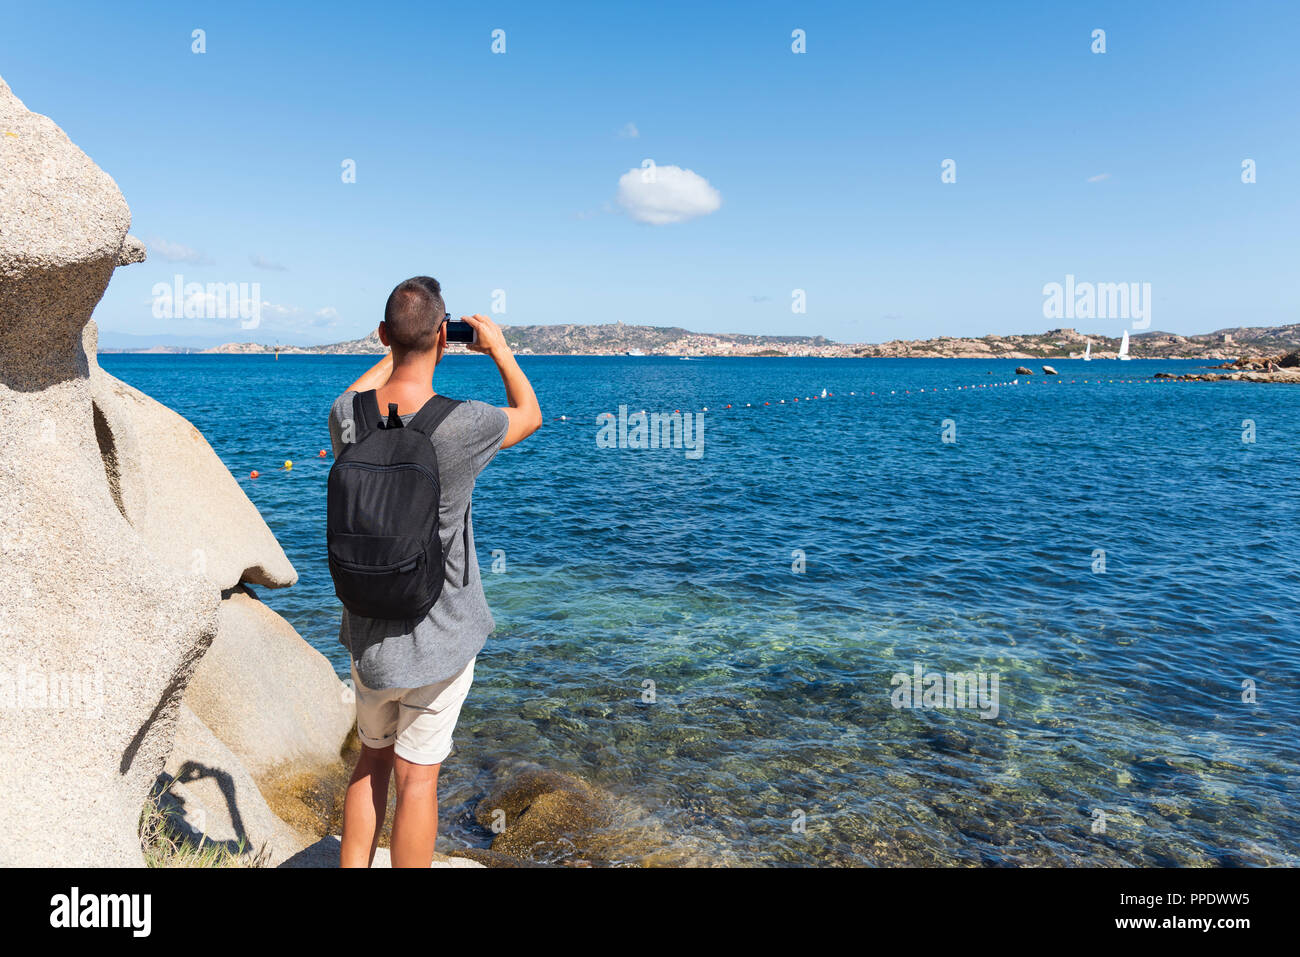 young caucasian man taking a photo of the coast of the Mediterranean sea in Sardinia, Italy, highlighting La Maddalena, Santo Stefano and Caprera isla - Stock Image